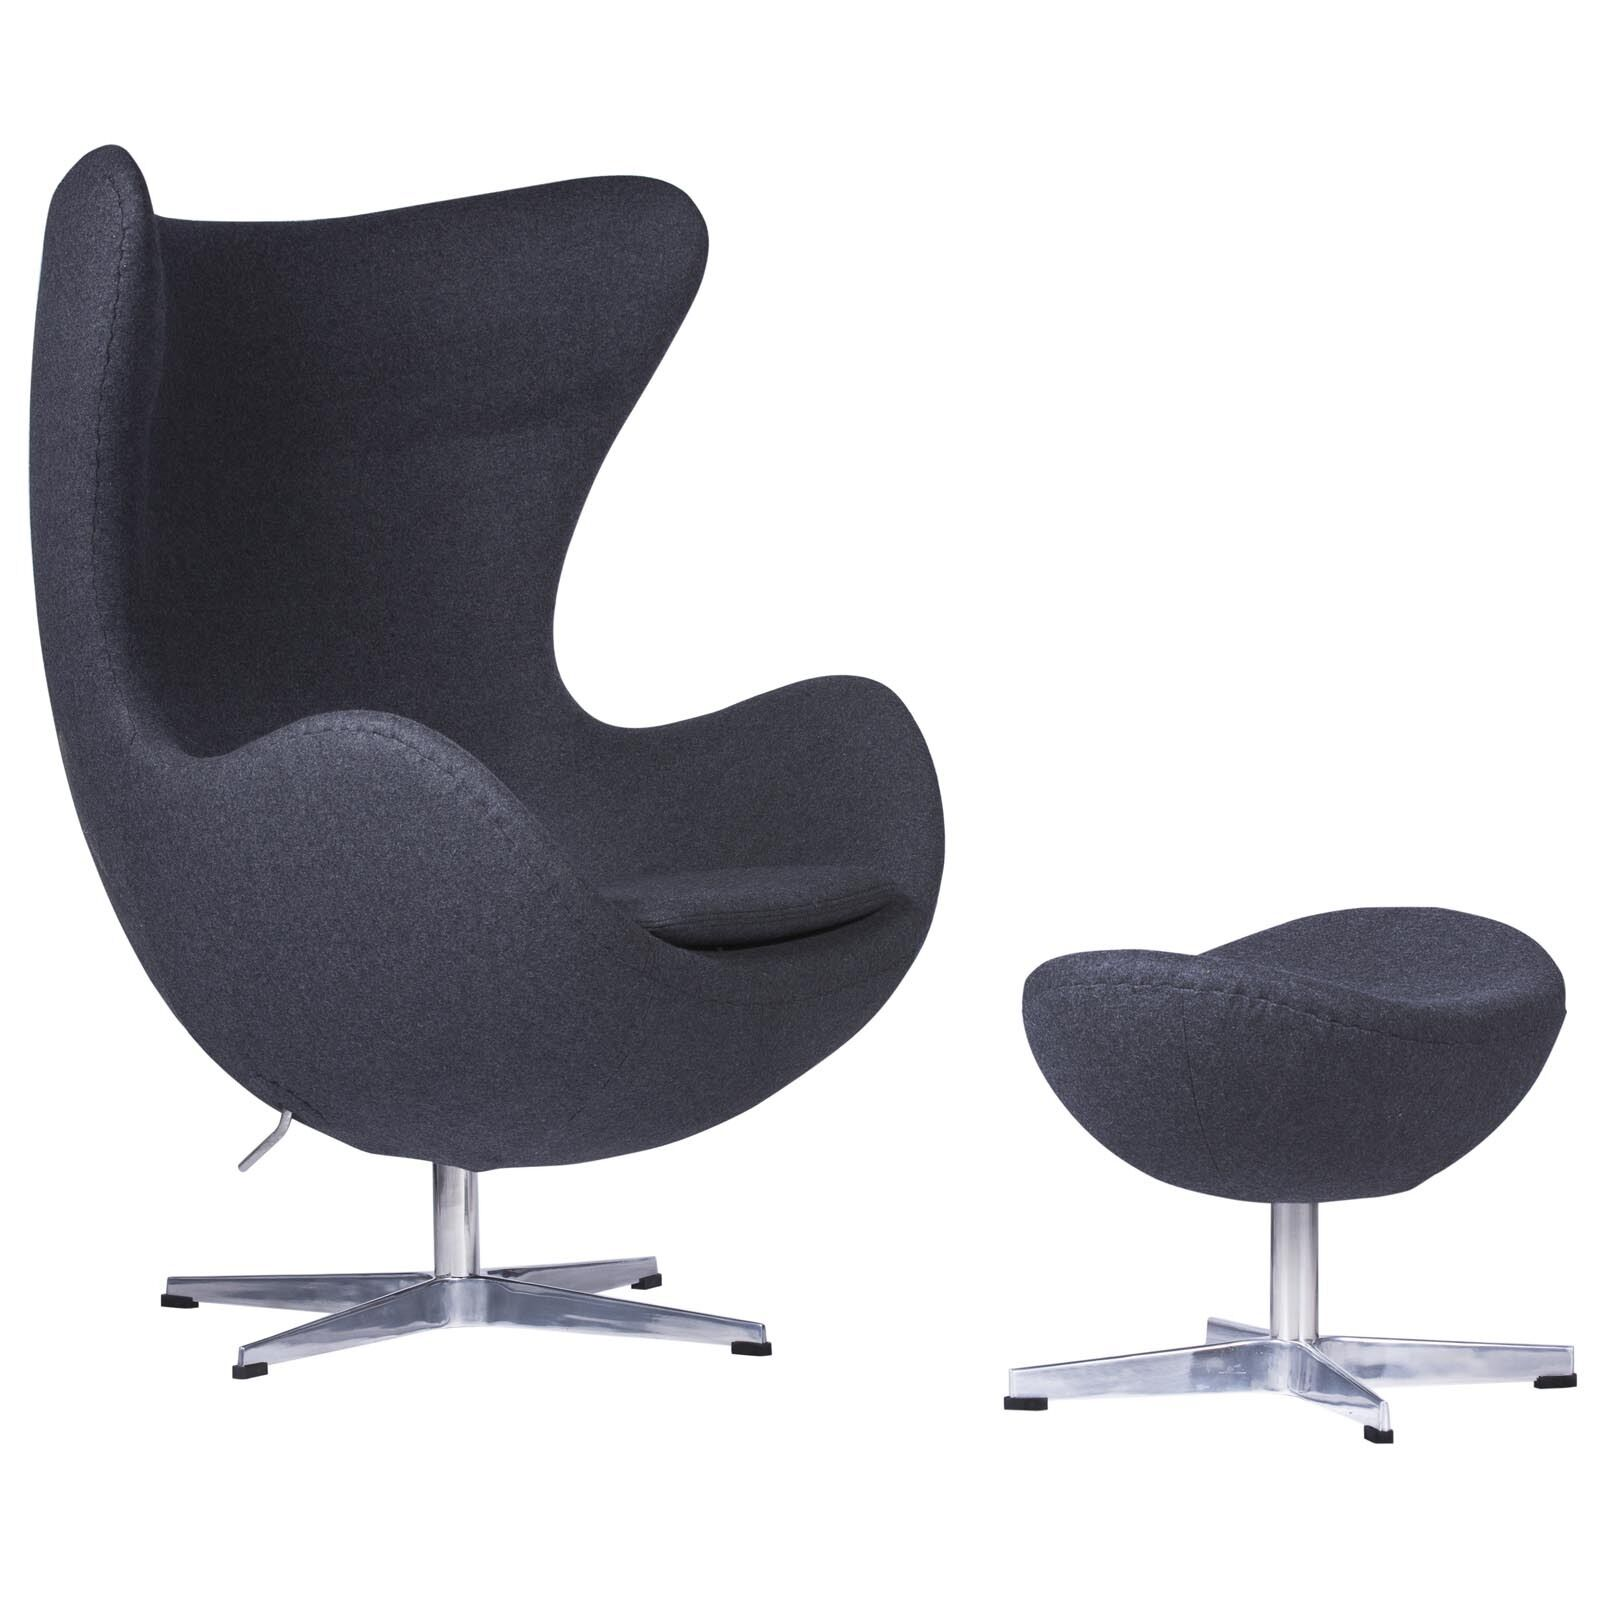 Arne Jacobsen Style Egg Chair Ottoman In Dark Gray Wool